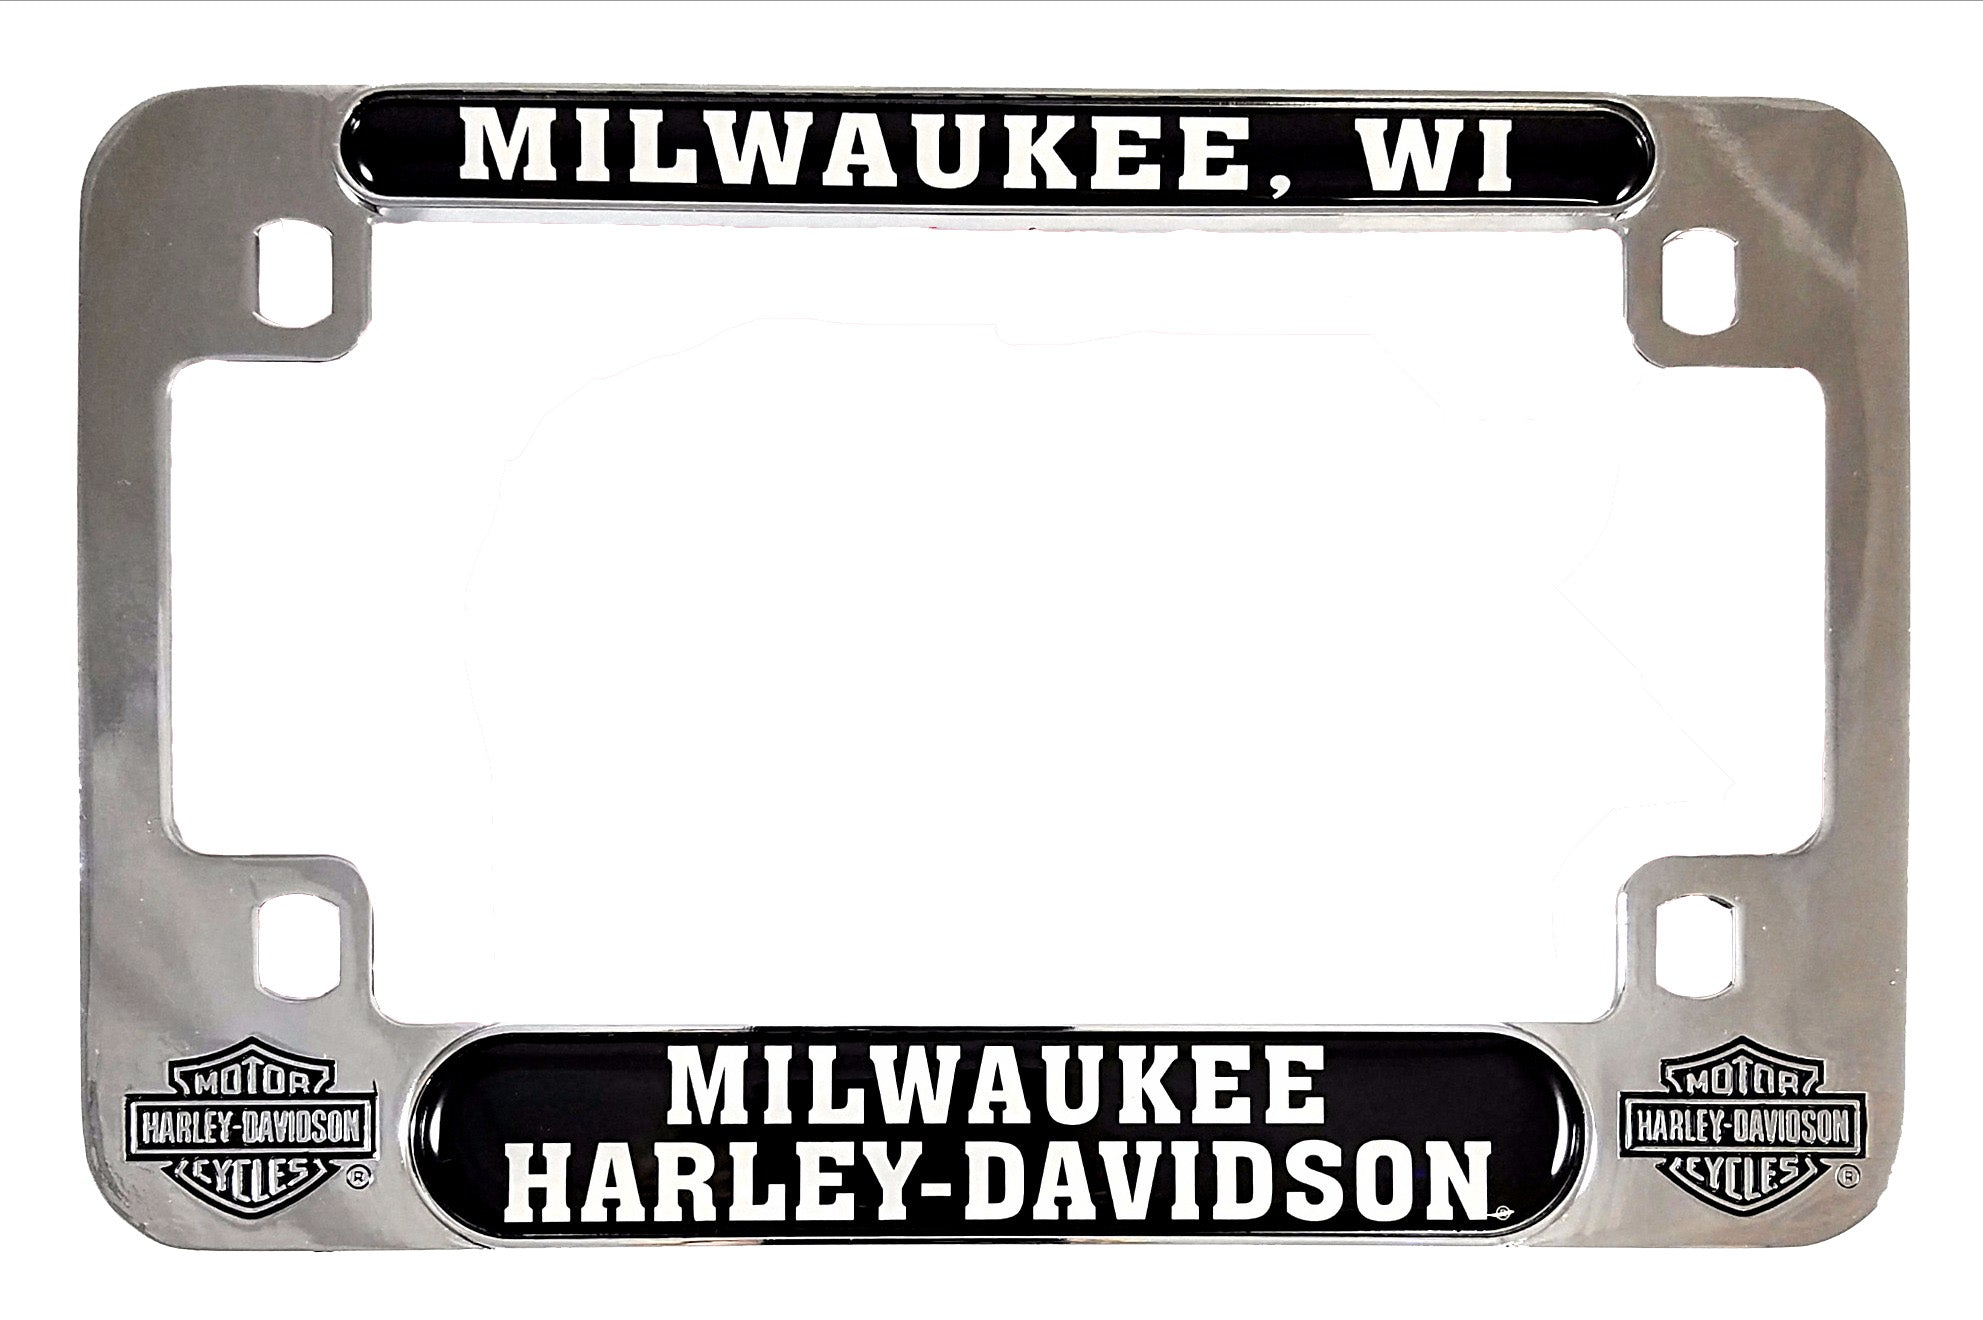 Milwaukee Harley-Davidson Motorcycle License Plate Frame